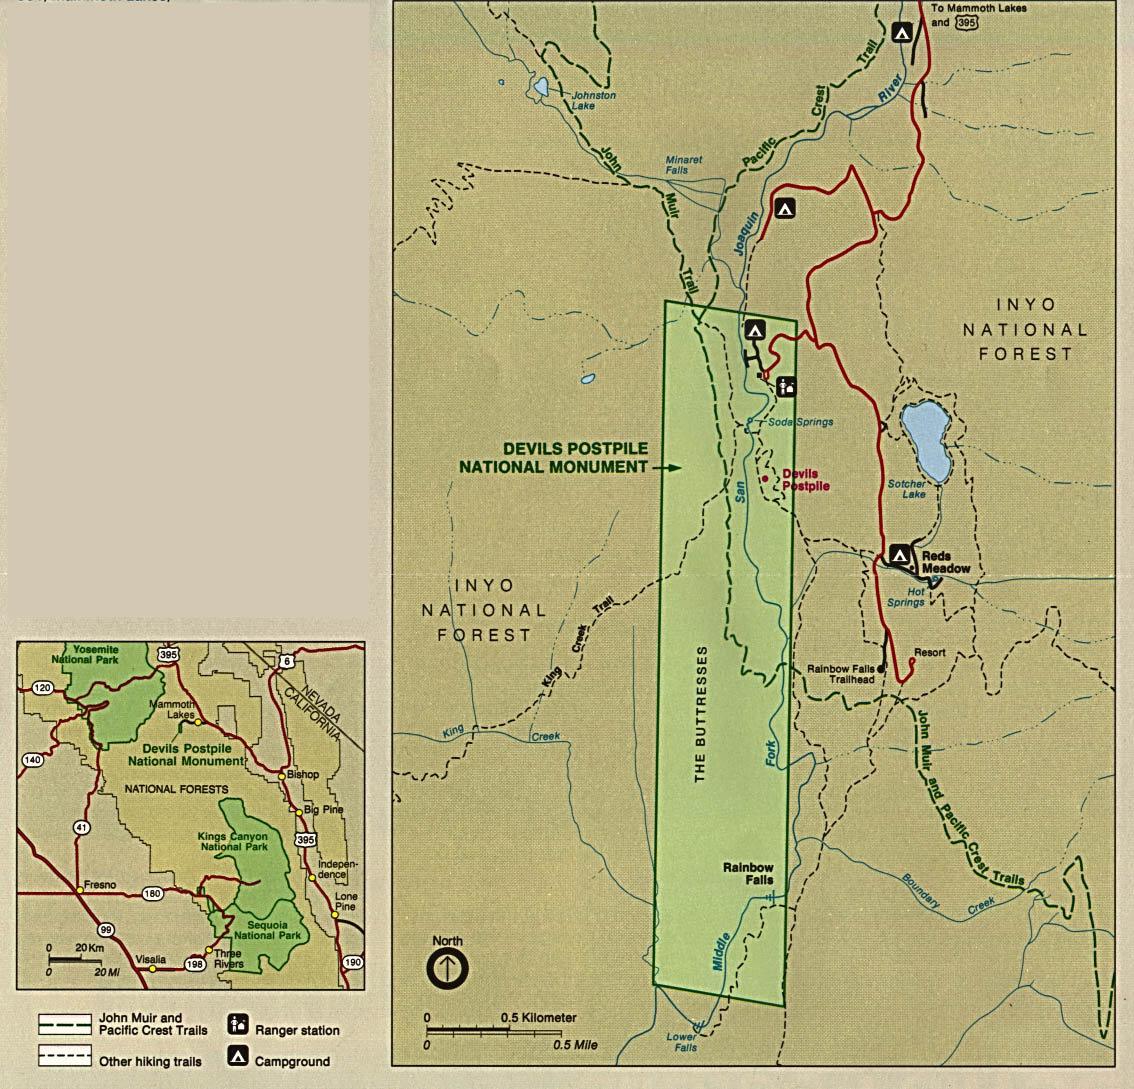 Maps of United States National Parks, Monuments and Historic Sites Devils Postpile National Monument [California] (Park and Area Maps) 1993 (289K)